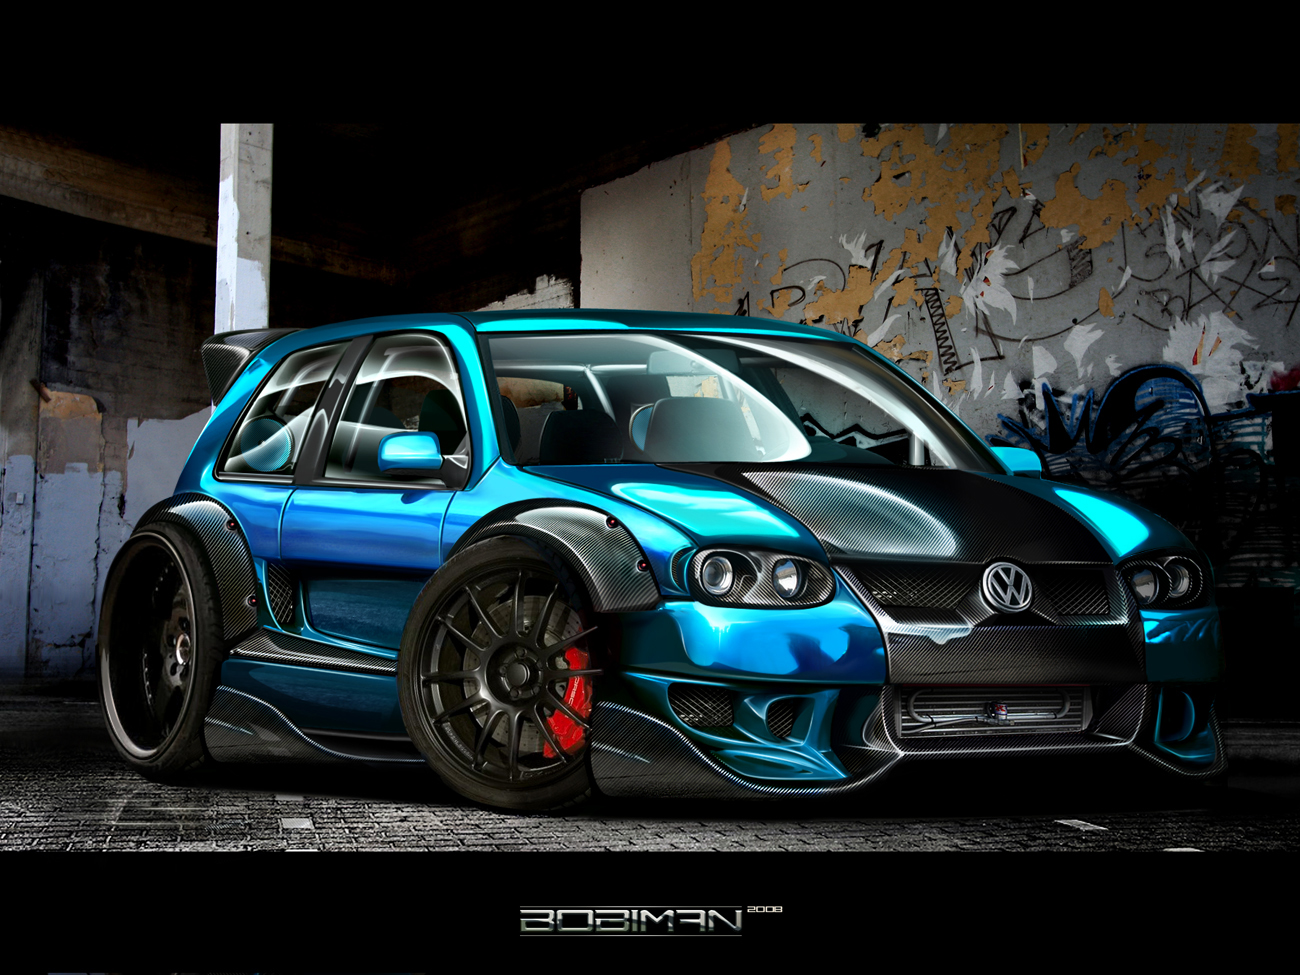 coolest car wallpaper See To World 1300x975